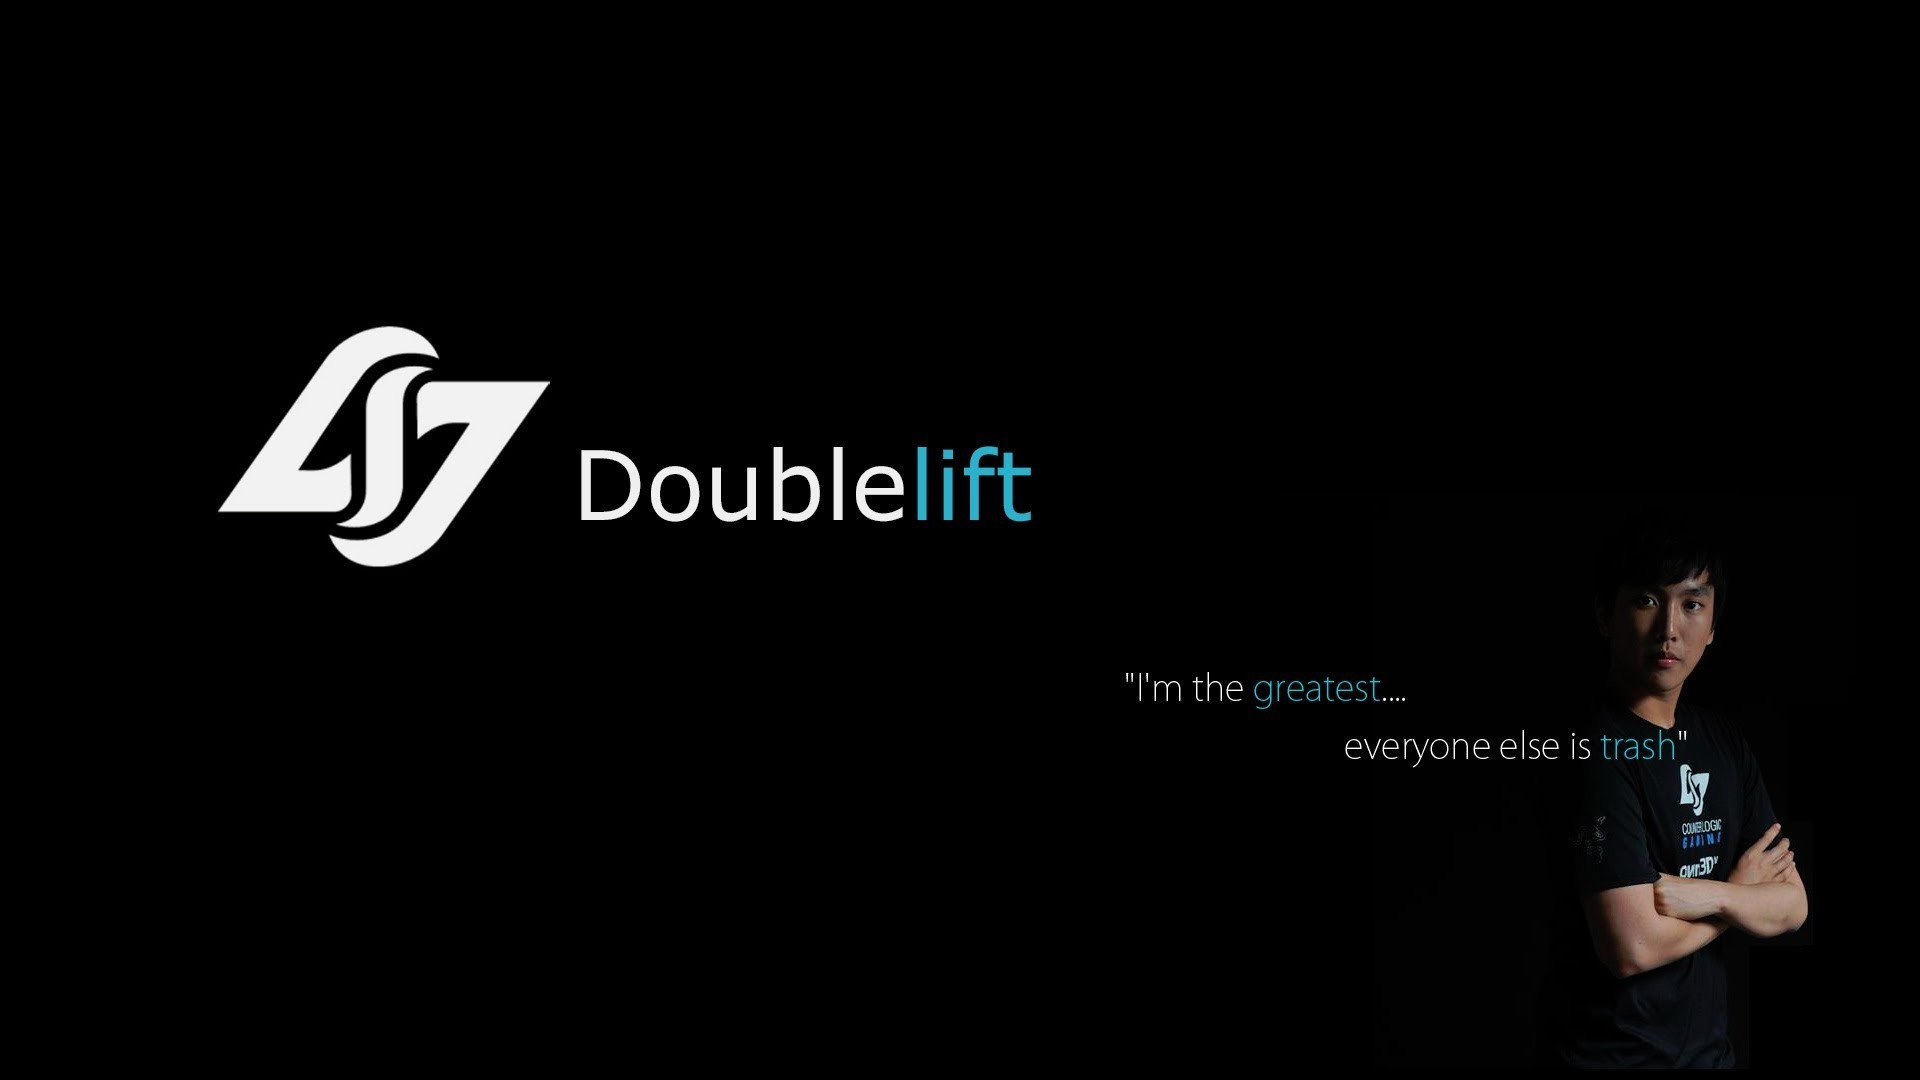 Res: 1920x1080, CLG Doublelift - Montage - Counter Logic Gaming